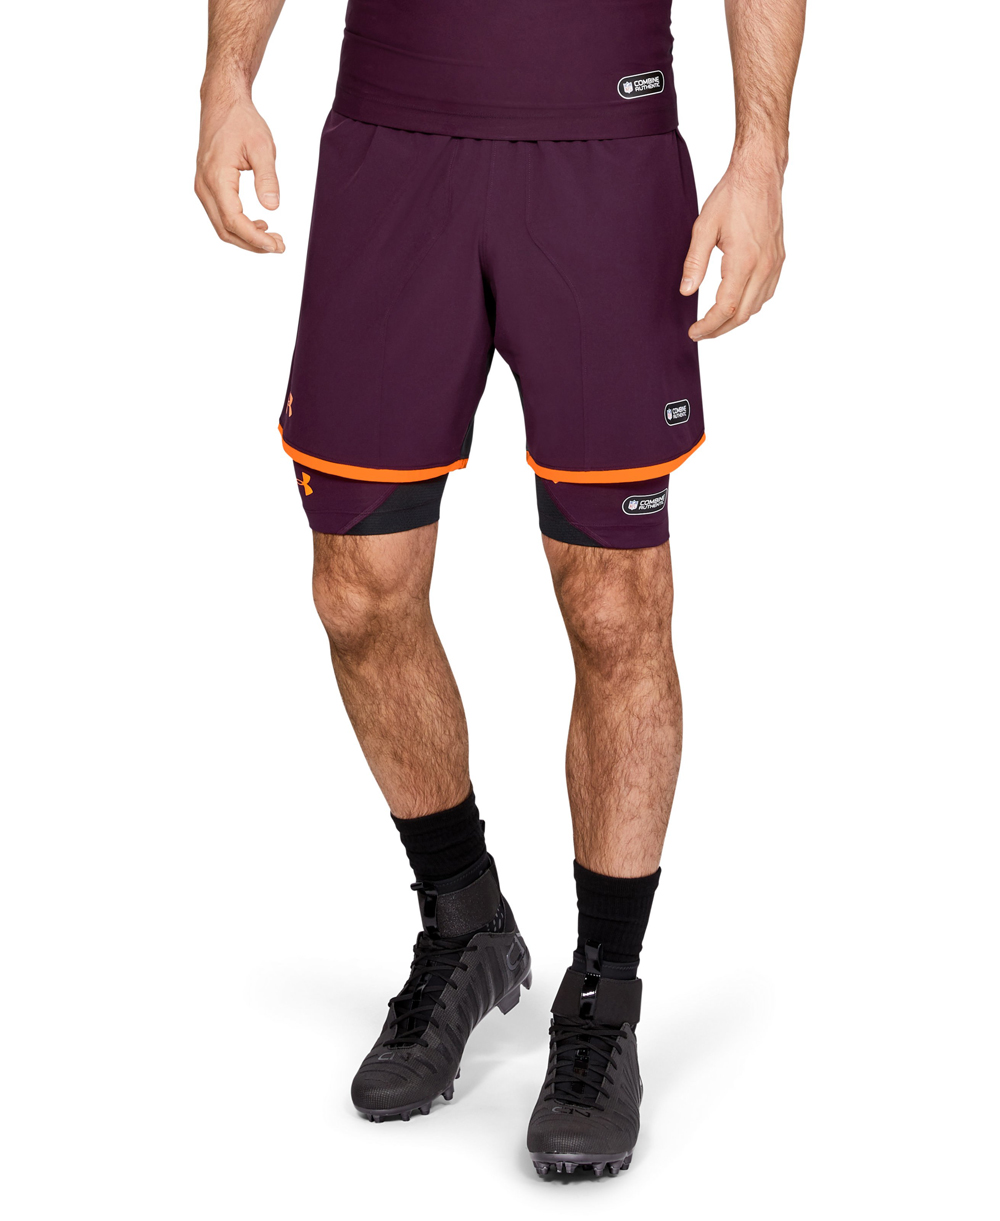 NFL Combine Authentic Men's Football Shorts Polaris Purple 501